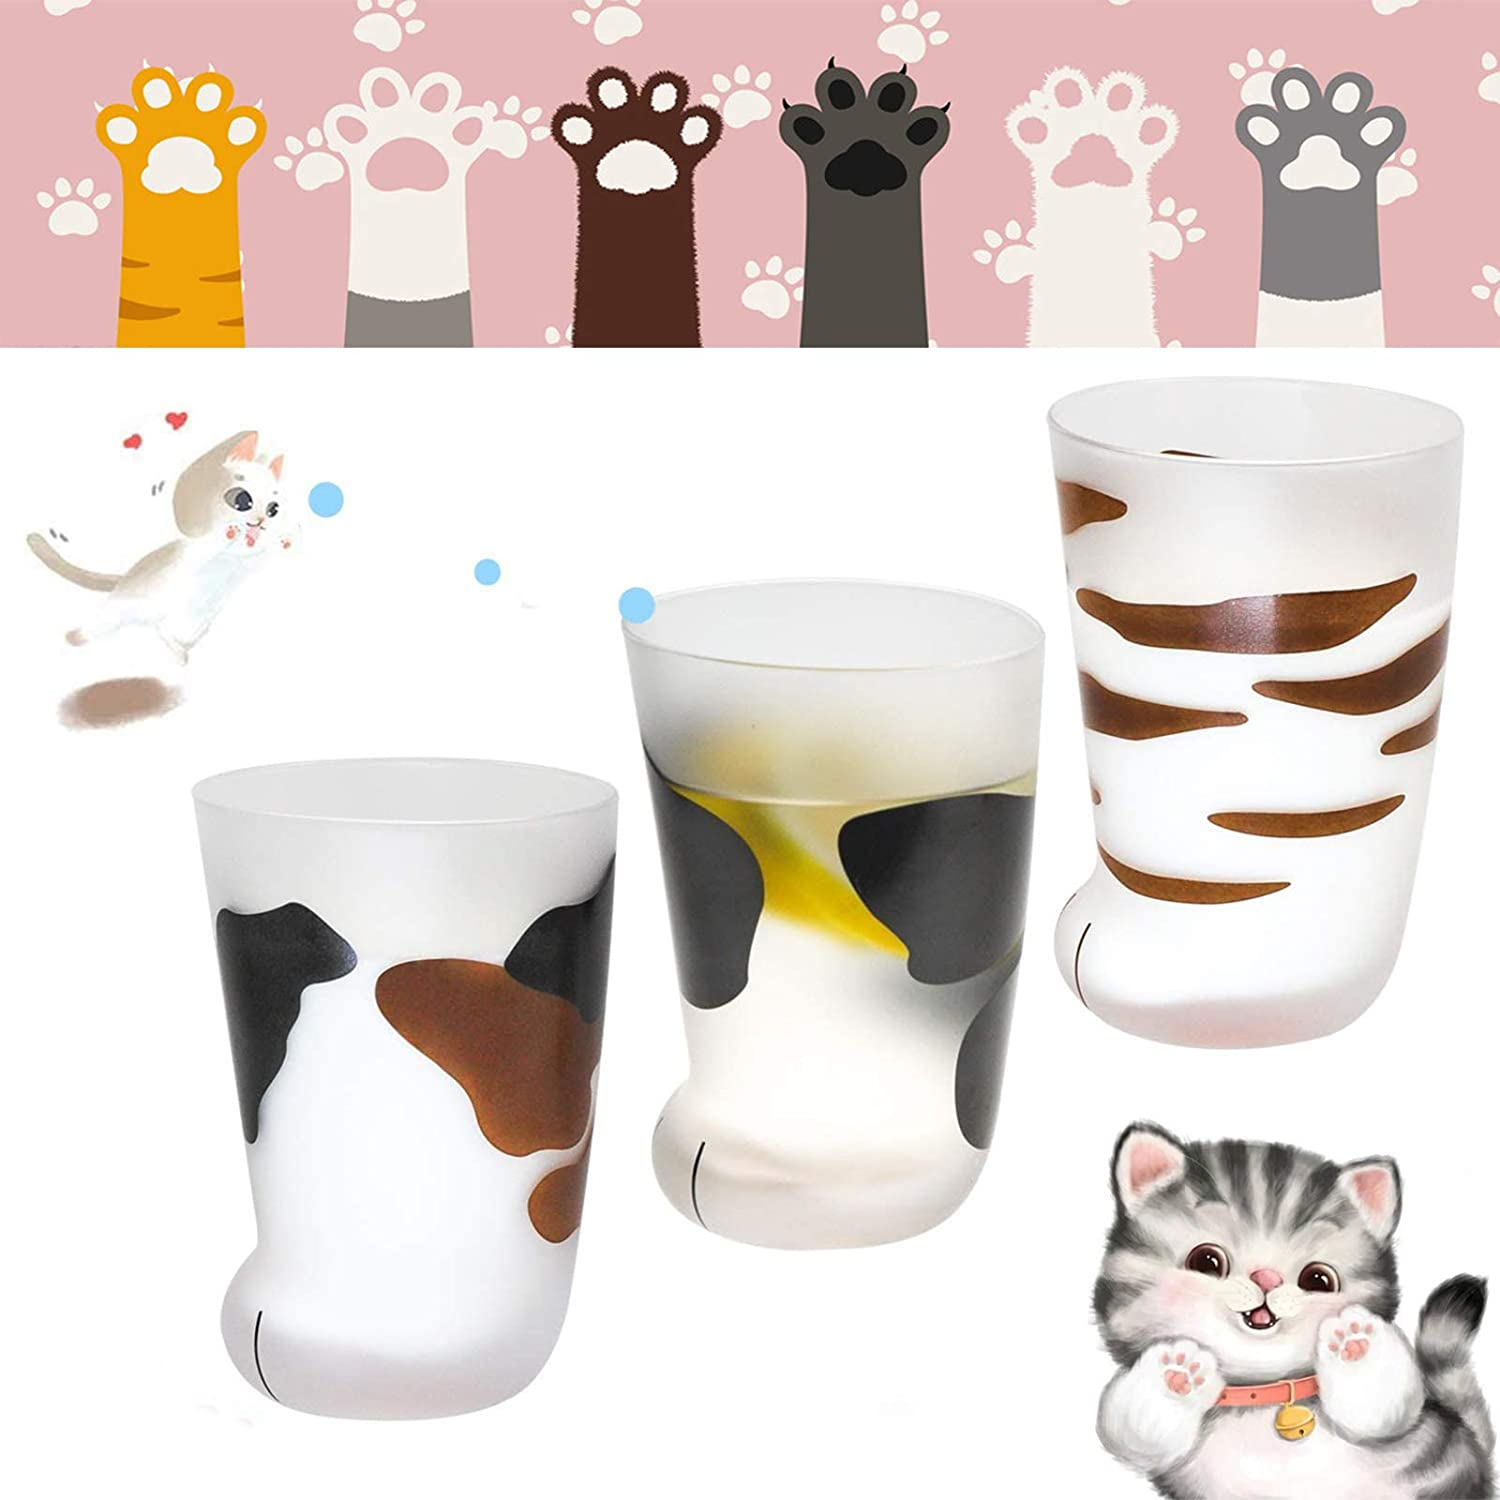 N//G Cat Paw Cup Milk Glass Frosted Glass Cup Cute Cat Foot Claw Print Mug for Coffee Kids Milk Glass Cups Tumbler Personality Breakfast Milk Cup Men and Women Household Cups Birthday Gift A+B+C